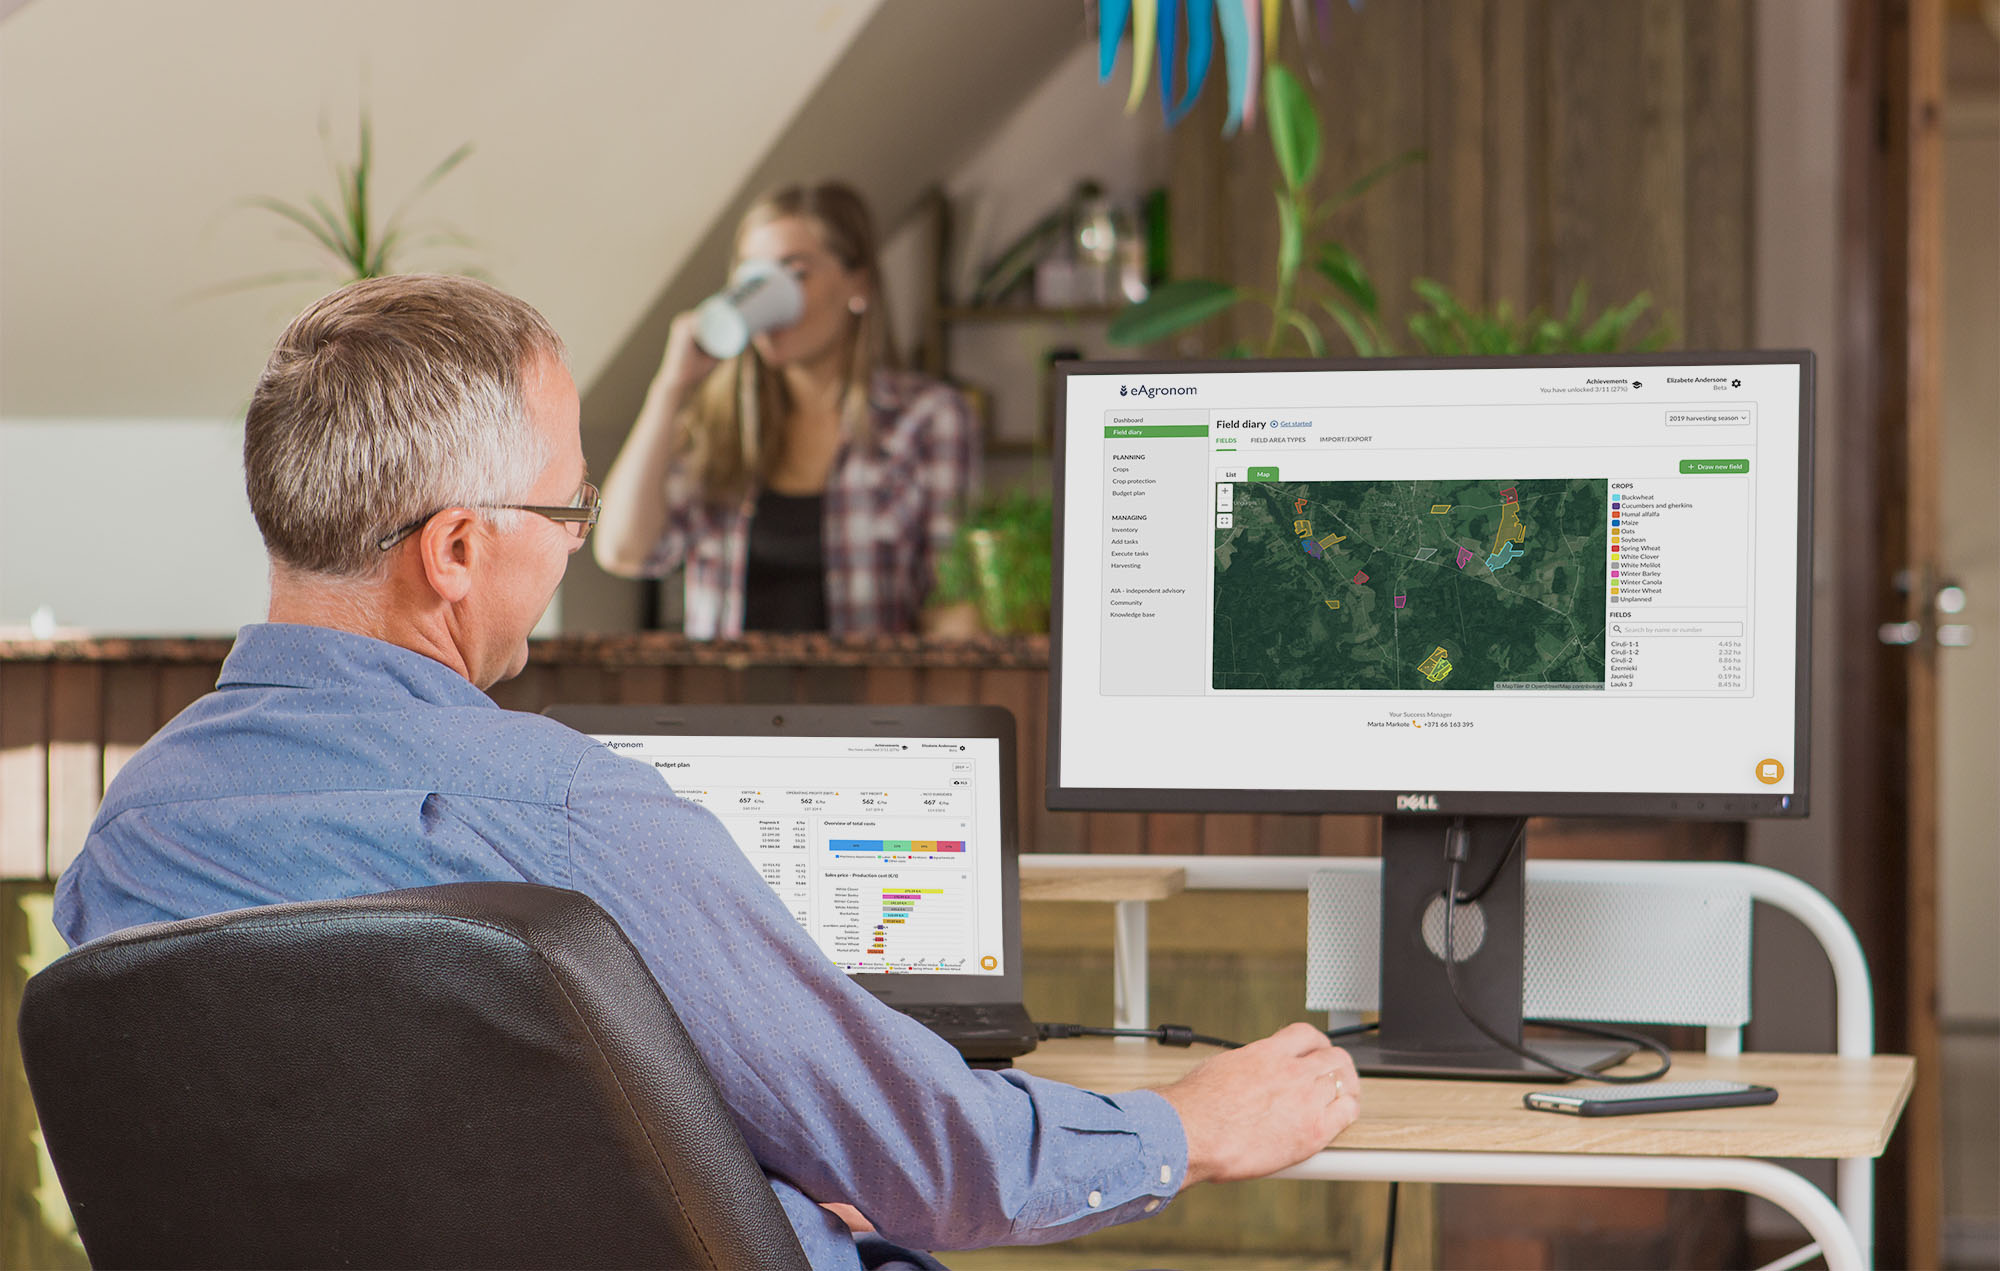 A complete cloud-based farm management platform for grain growers and agronomists